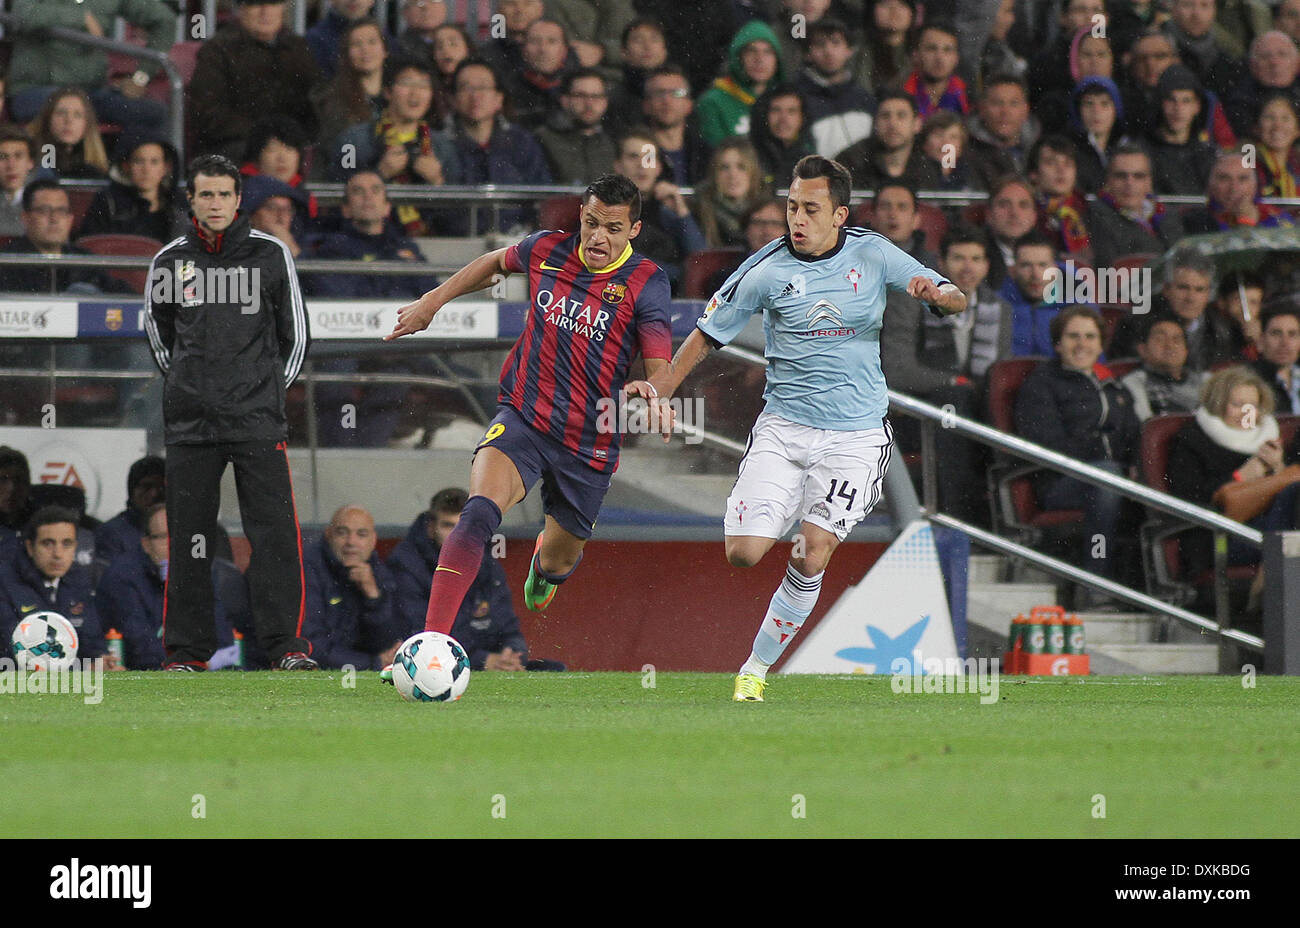 26.03.2014  Barcelona, Spain.  Alexis  in action during the Liga BBVA game between Barcelona and Celta Vigo from Camp Nou - Stock Image